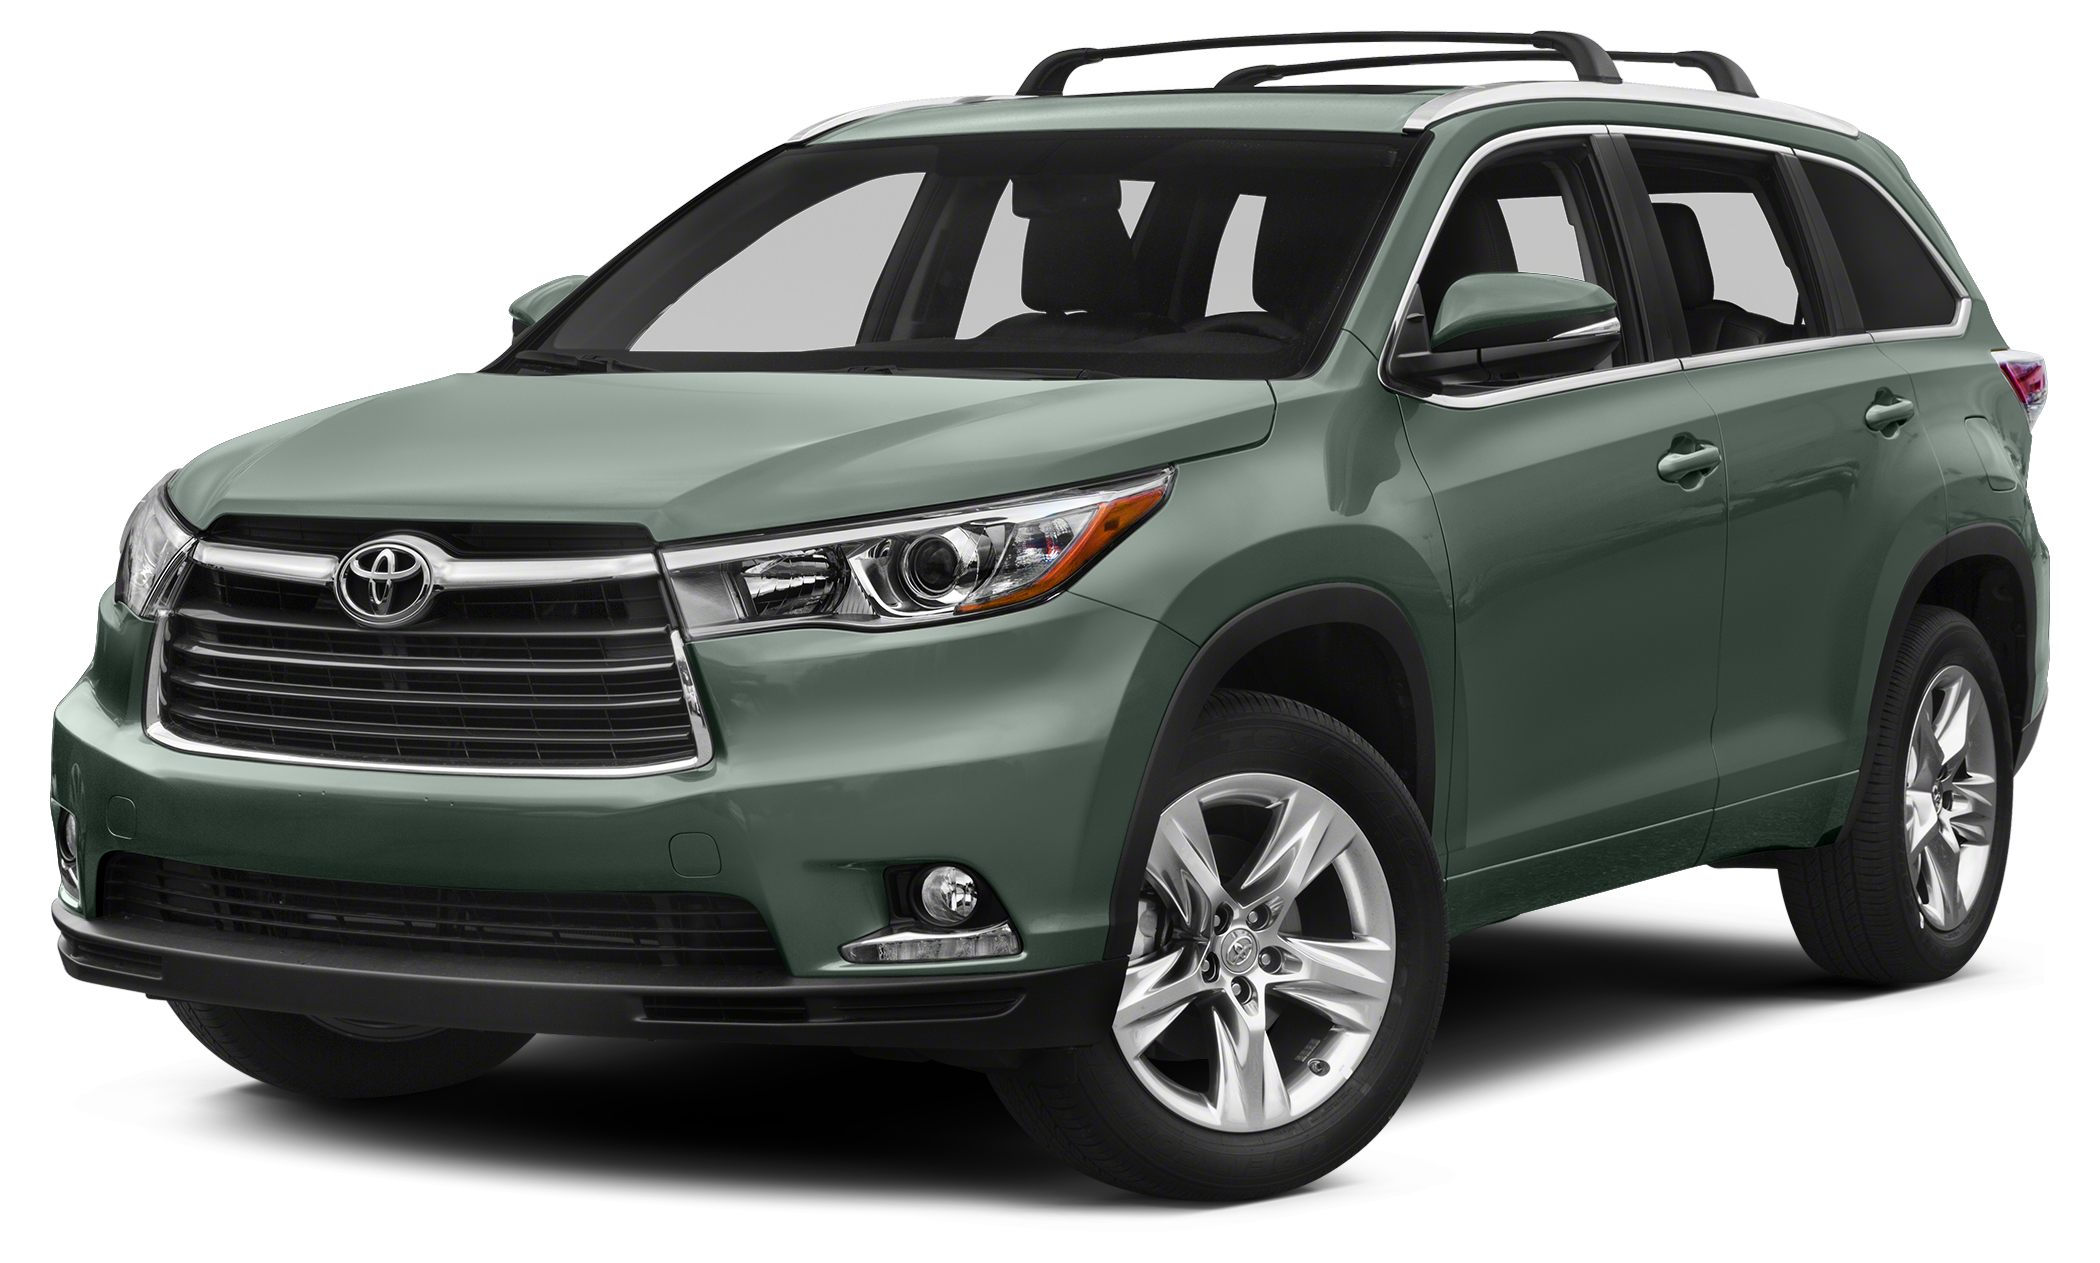 2014 Toyota Highlander XLE CARFAX 1-Owner LOW MILES - 41776 PRICED TO MOVE 400 below Kelley Bl